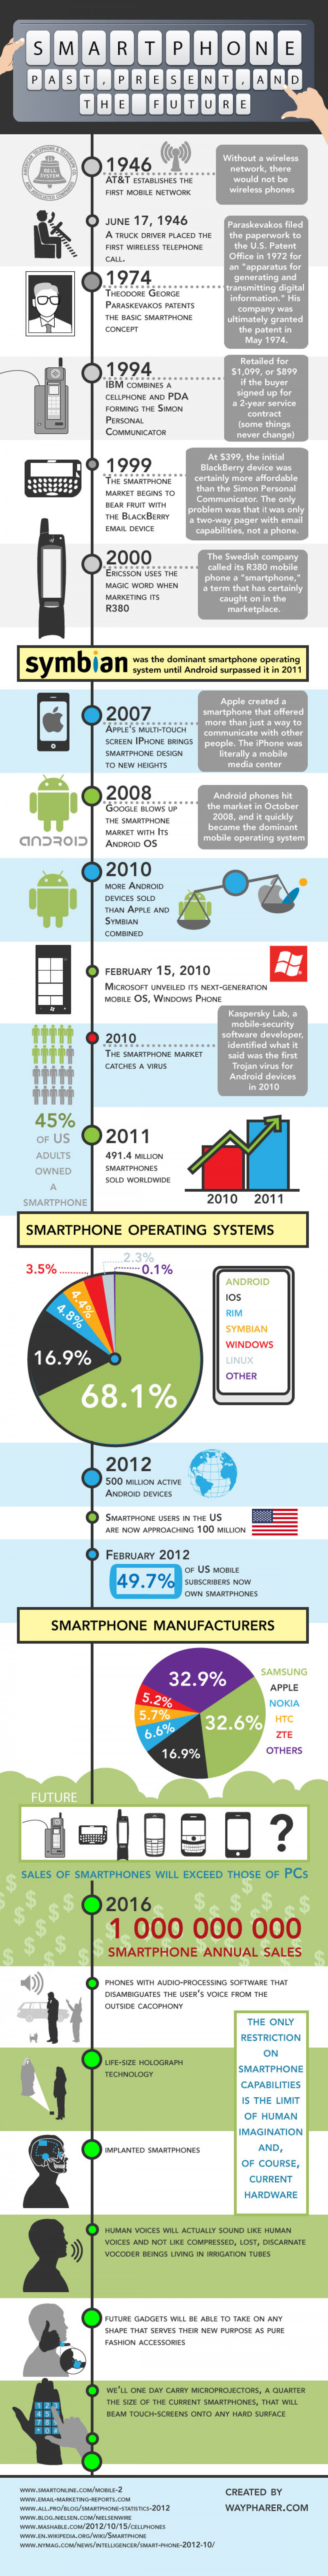 Smartphones- Past, Present, and the Future Infographic